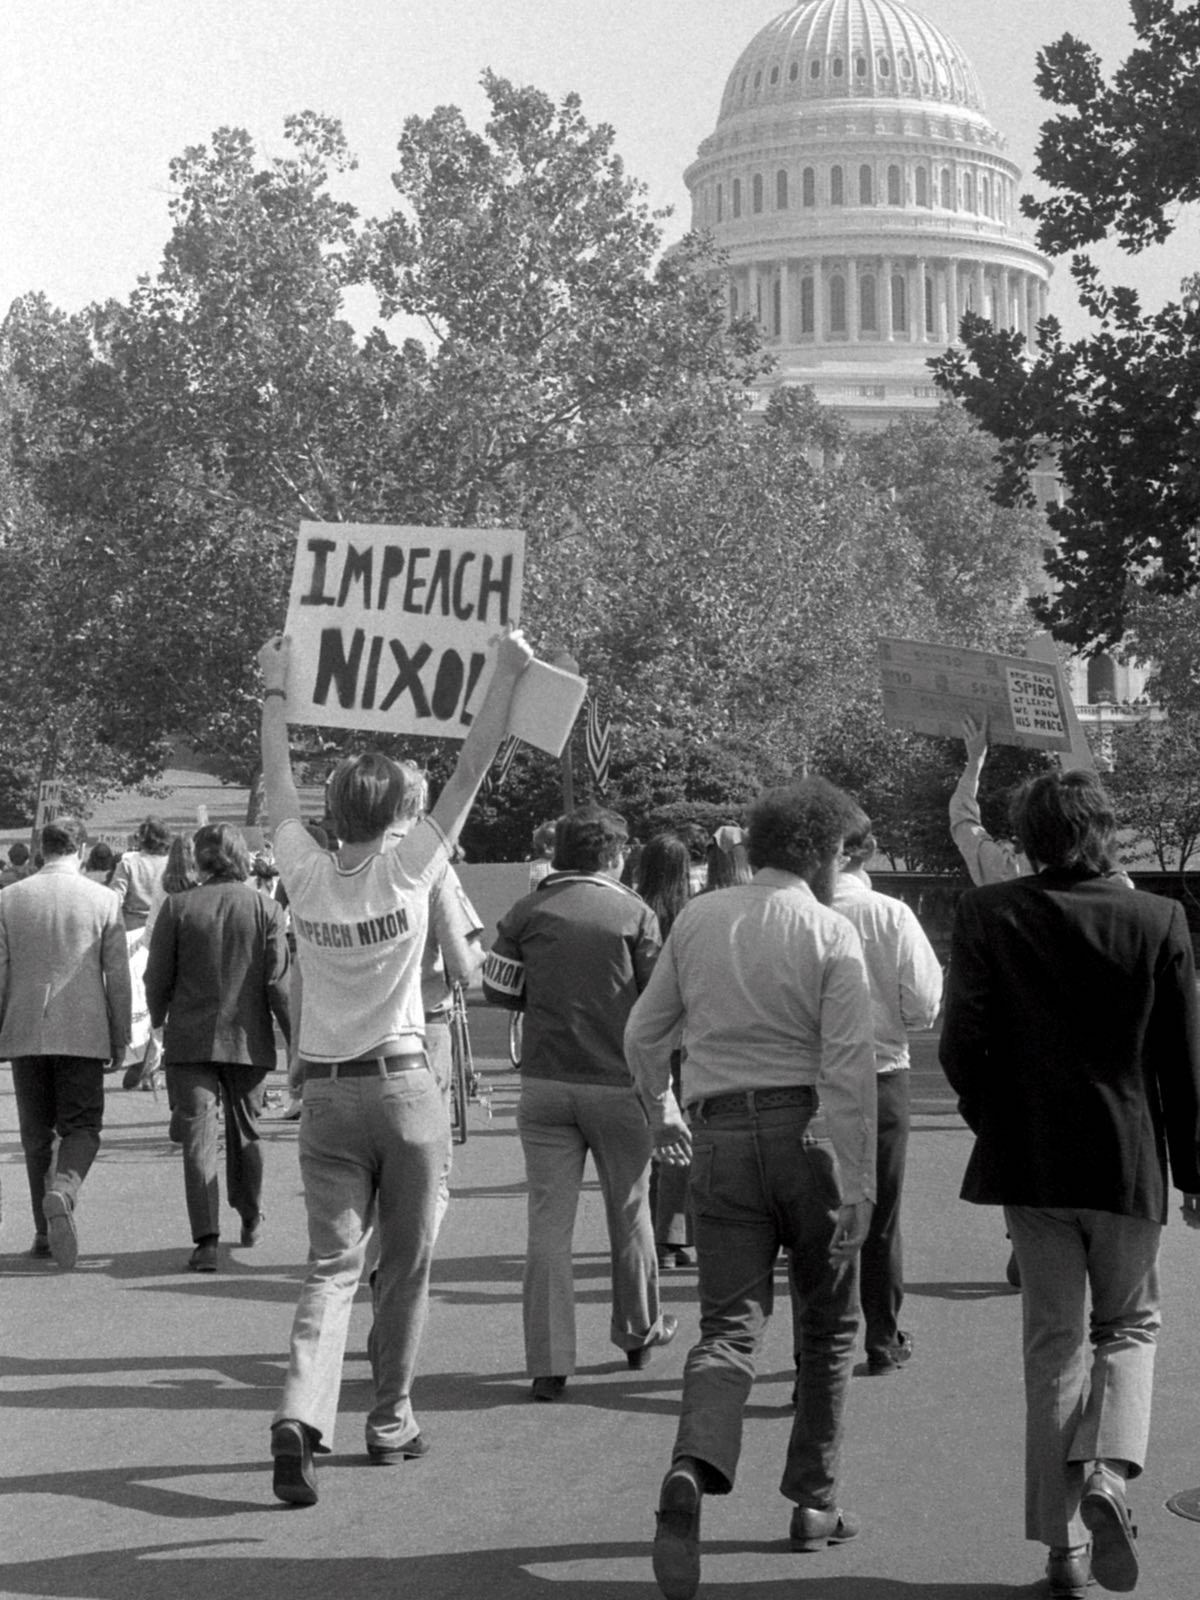 Once Nixon was implicated in the burglary protesters demanded his impeachment